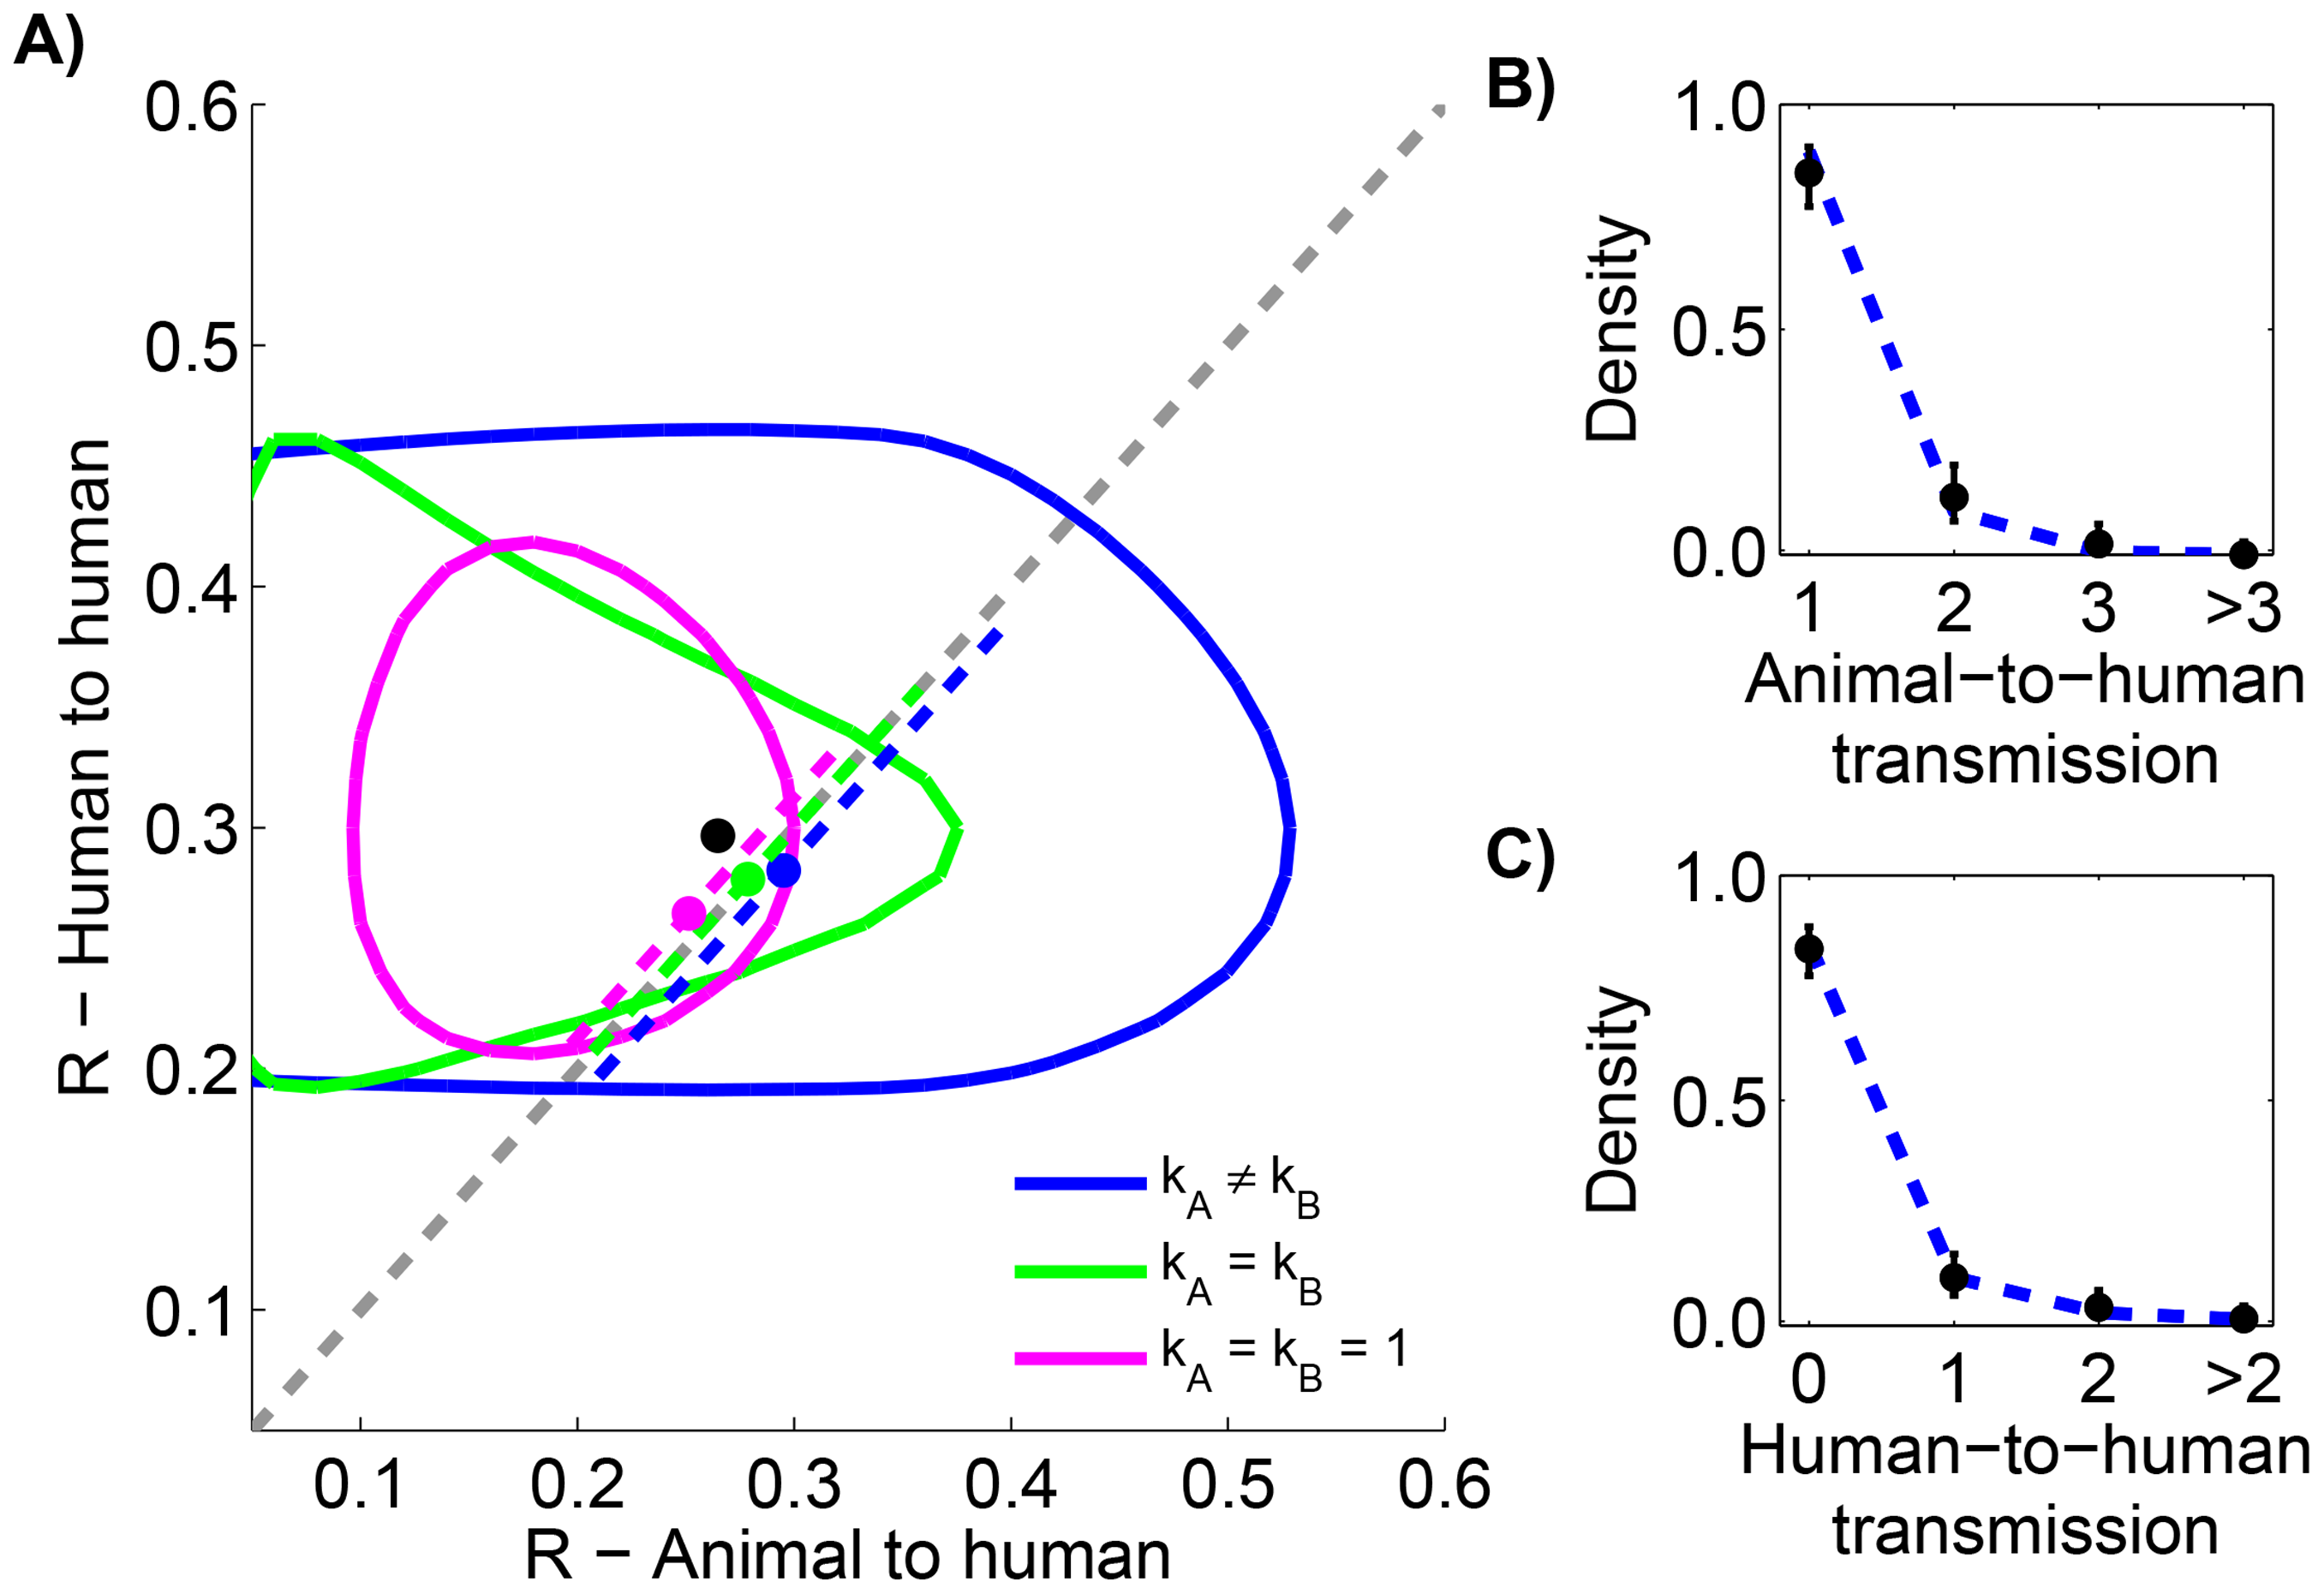 Comparing animal-to-human and human-to-human transmissibility for human monkeypox in the Democratic Republic of Congo, 1981–1984.